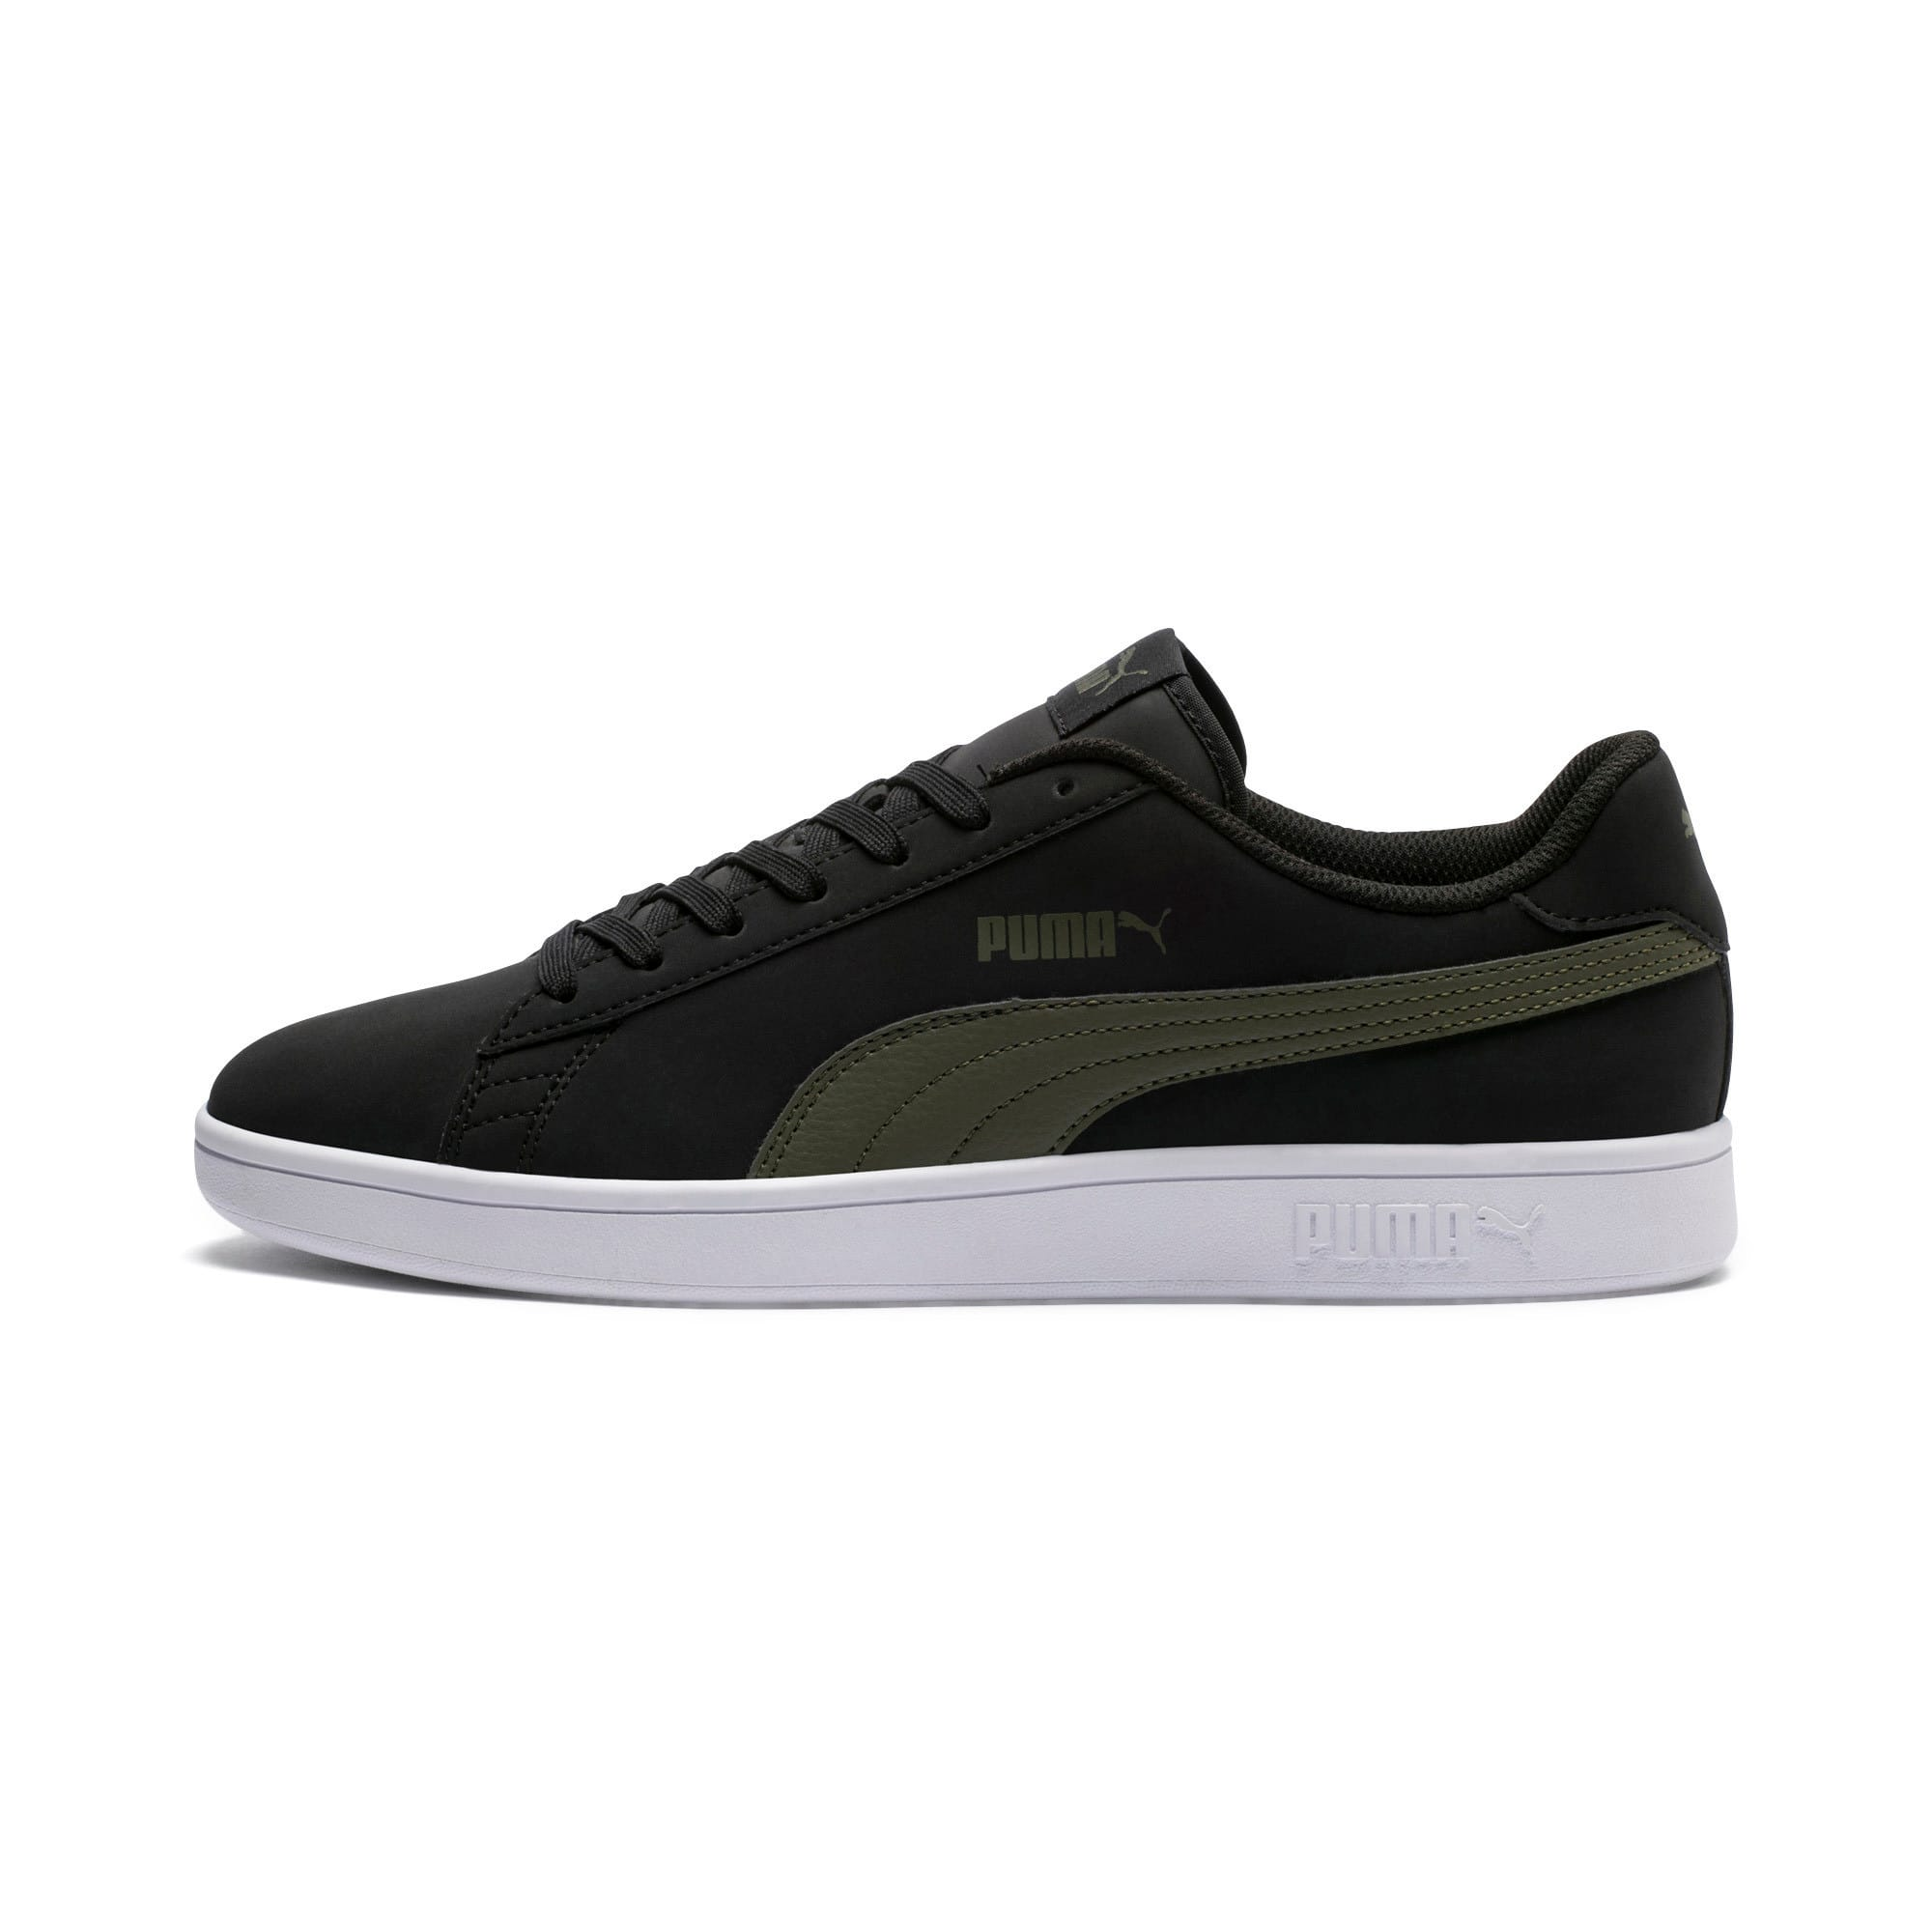 Thumbnail 1 of Smash v2 Buck Sneaker, Puma Black-Forest Night, medium